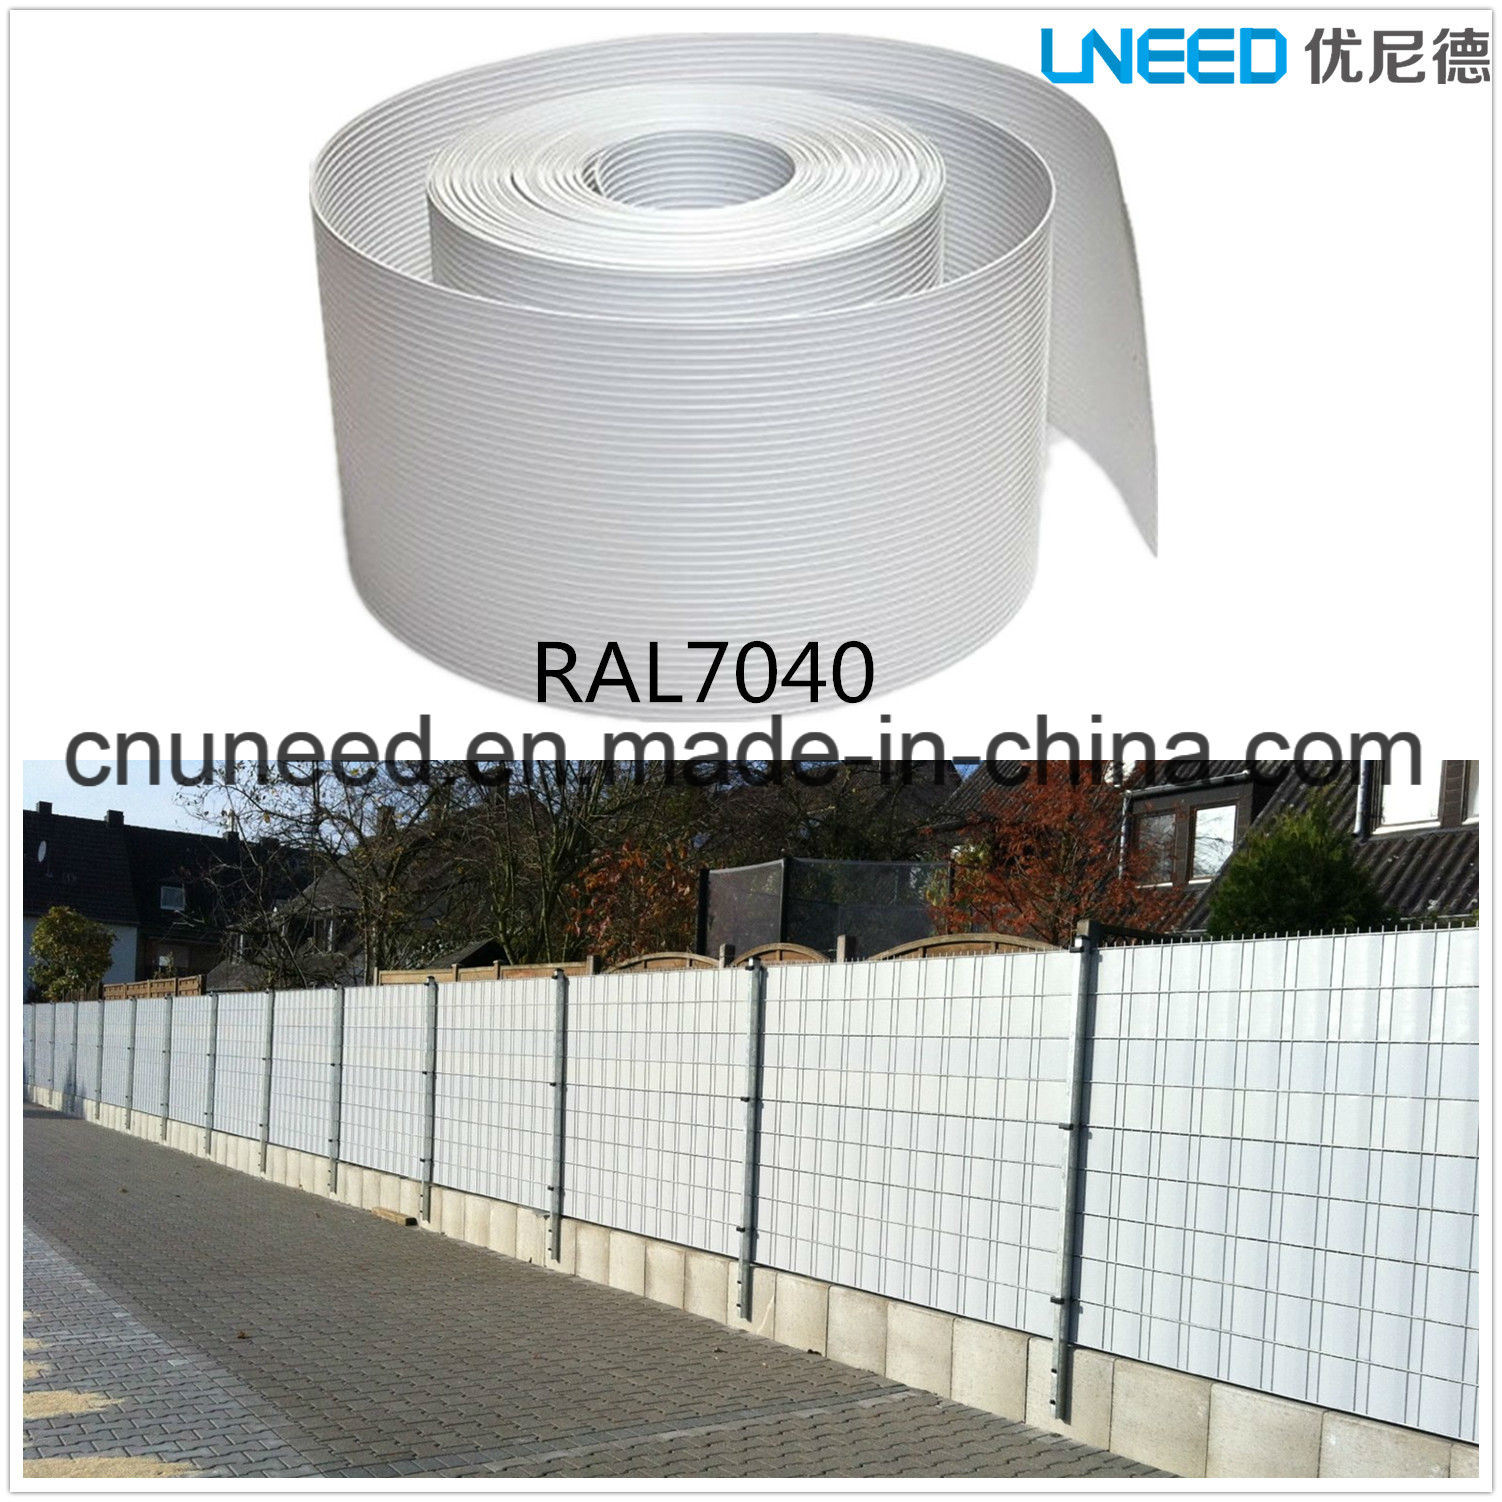 China 100 Uv Resistance Ral7040 1 3mm 19cm 2 525m Hart Pvc